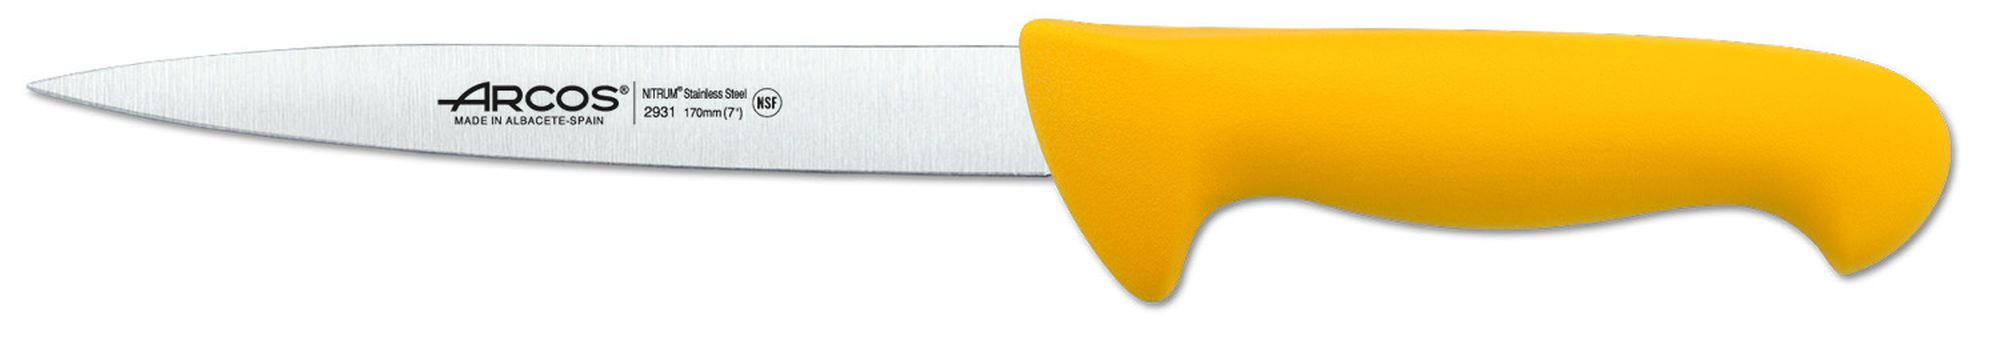 Sole Knife - Flexible Arcos ref.: 293100